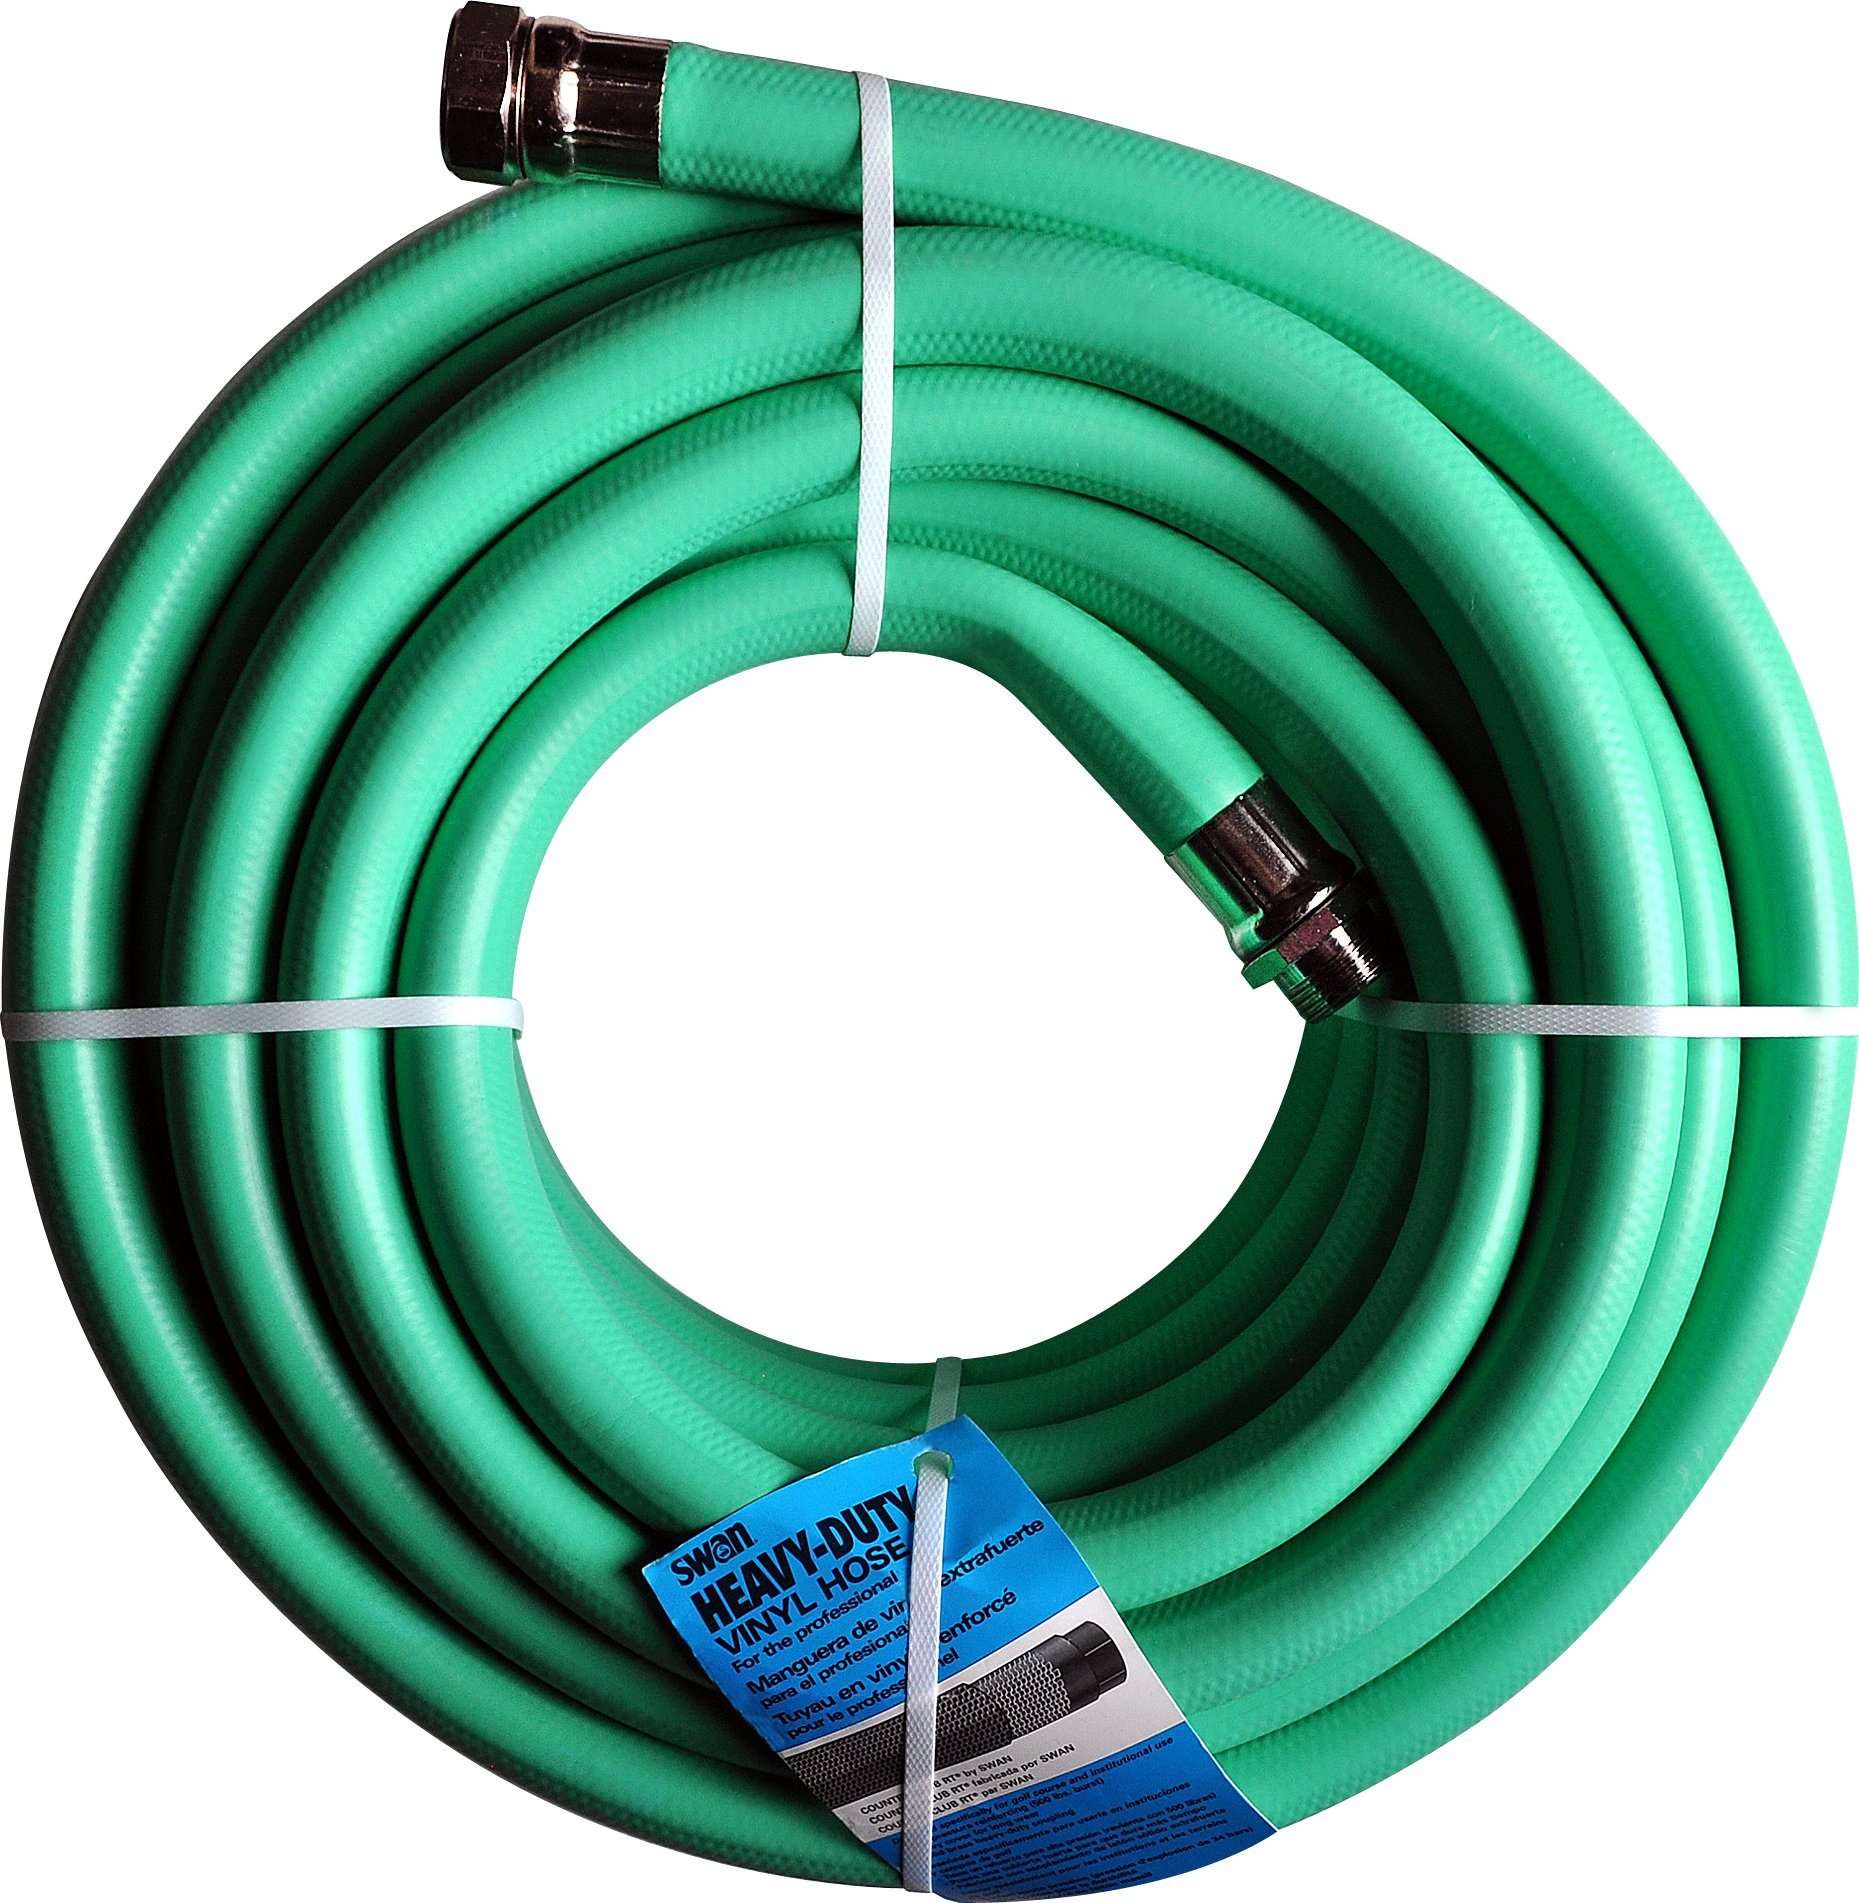 Swan Products SNCCC01050 Country Club Heavy Duty Water Hose with Crush Proof Couplings 50' x 1'', Green